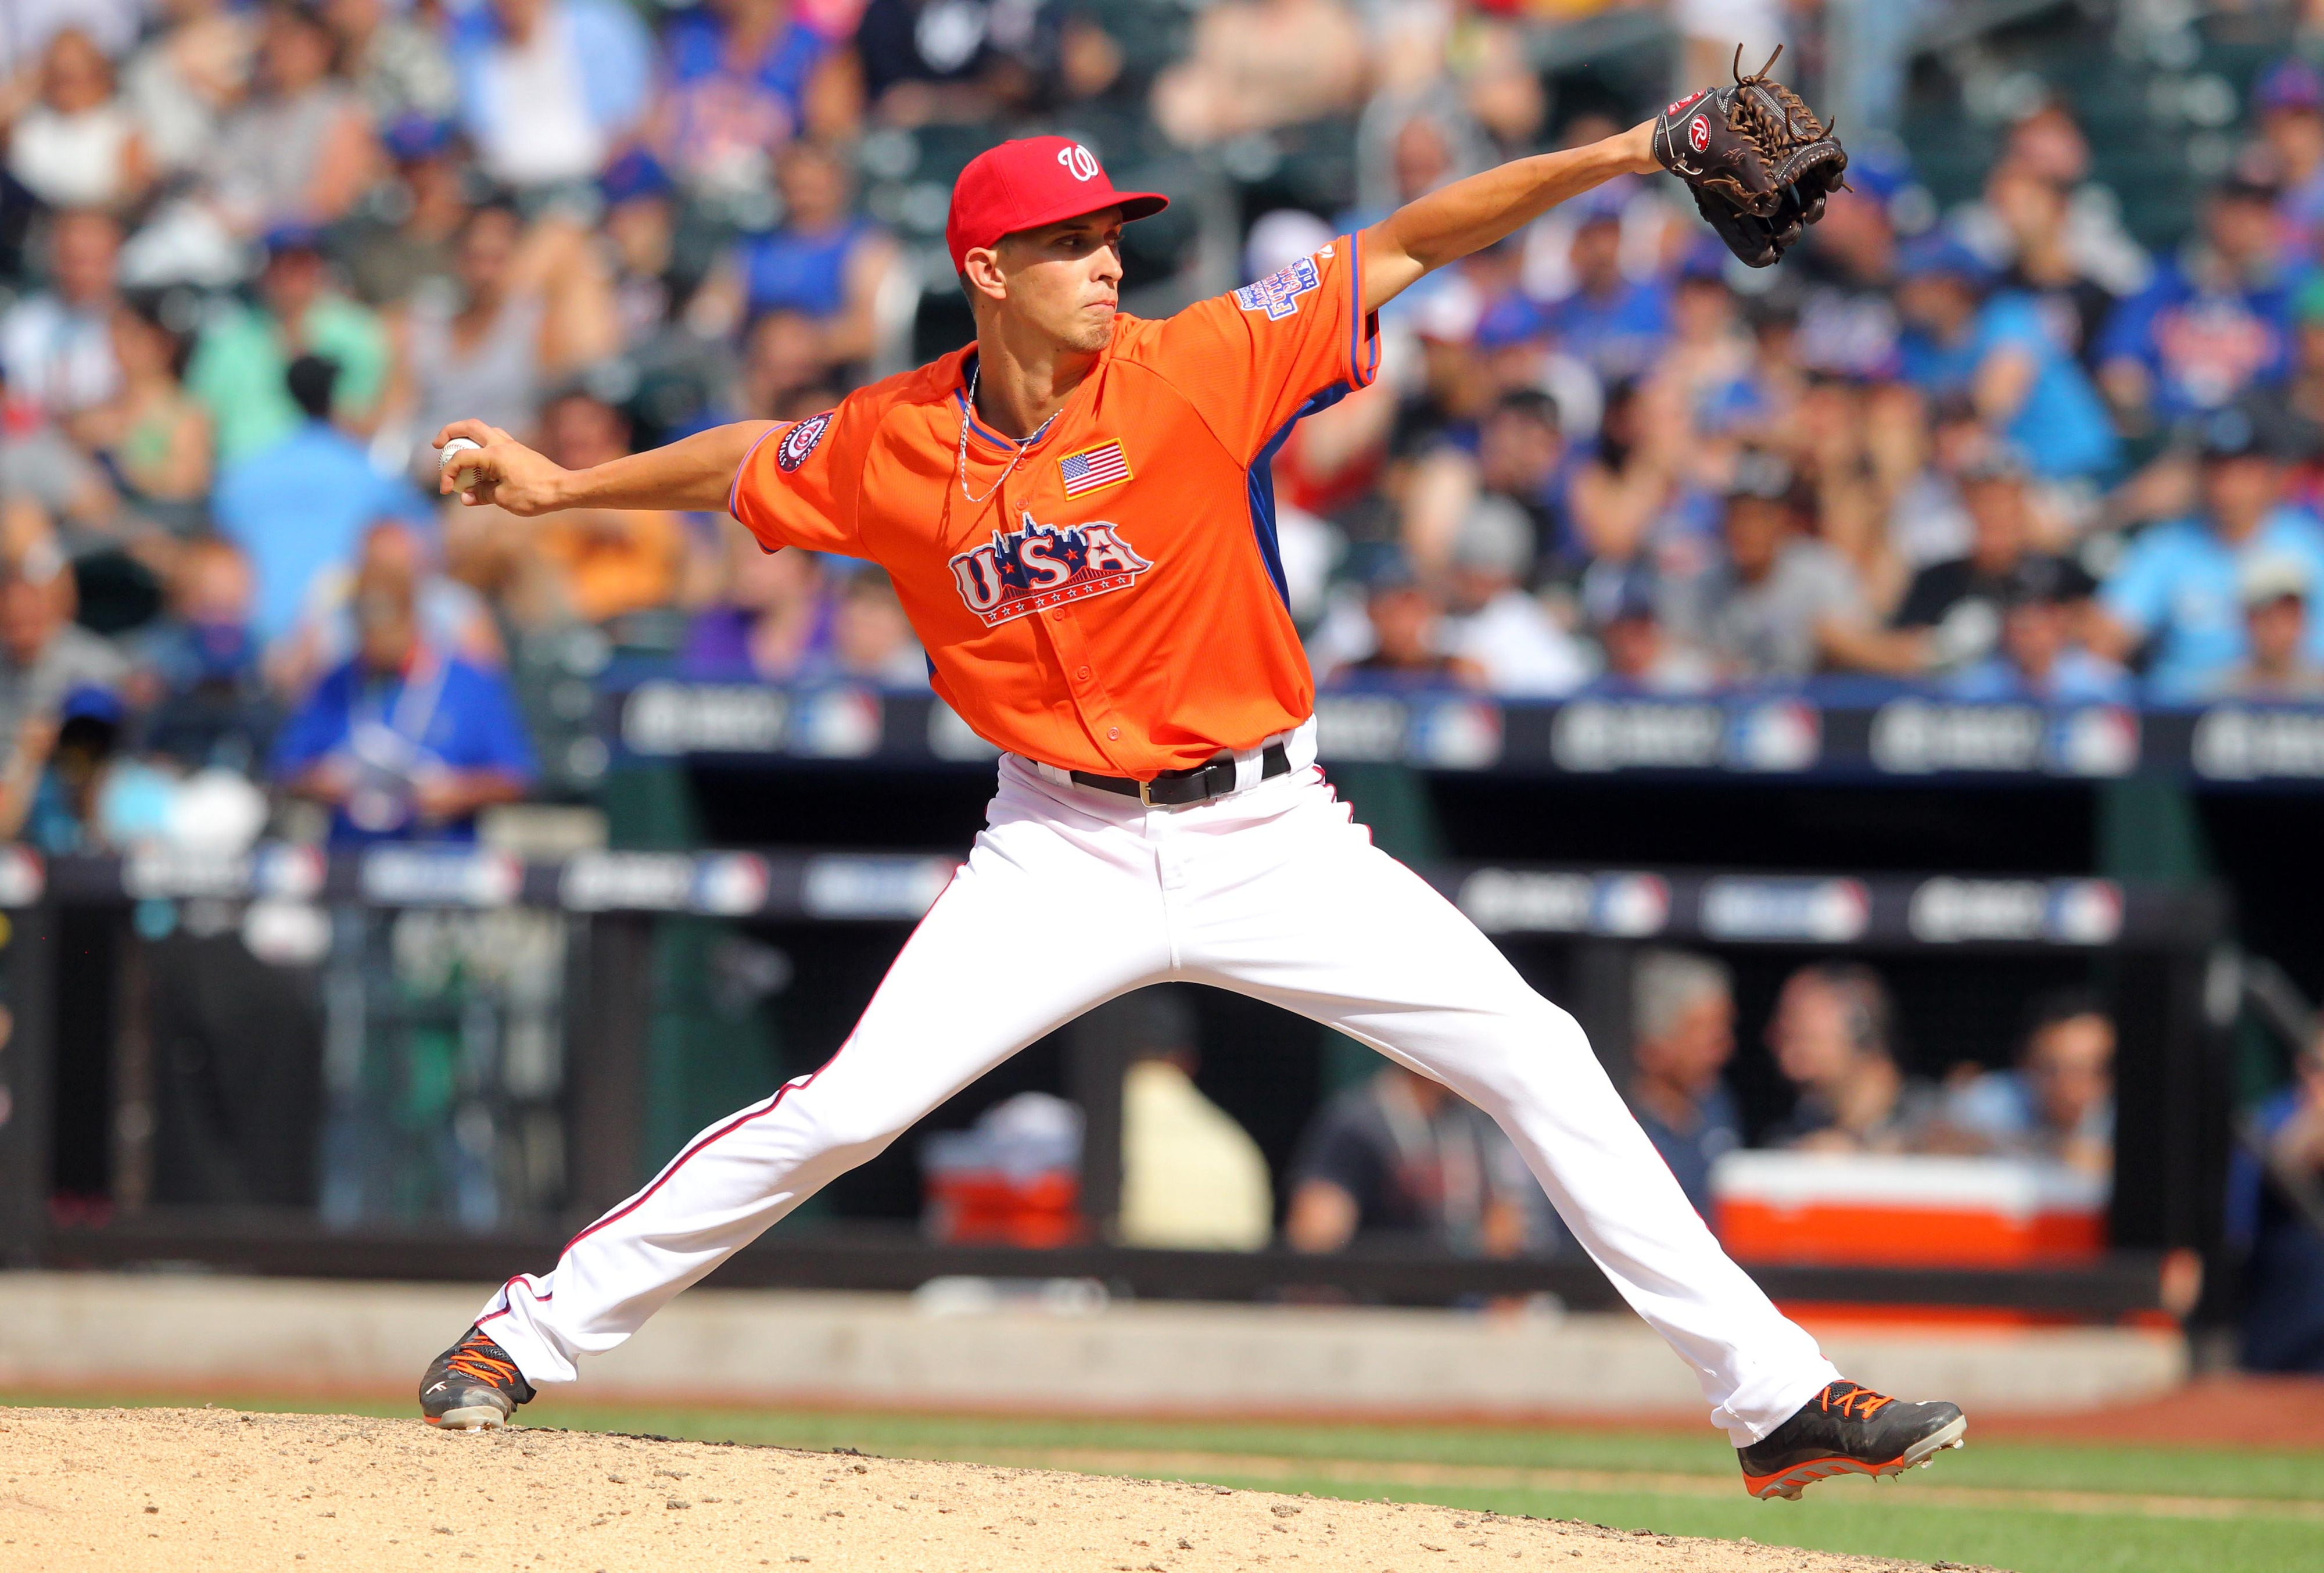 Jul 14, 2013; Flushing , NY, USA; USA pitcher A.J. Cole throws a pitch during the 2013 All Star Futures Game at Citi Field. USA defeated World 4-2. Mandatory Credit: Brad Penner-USA TODAY Sports